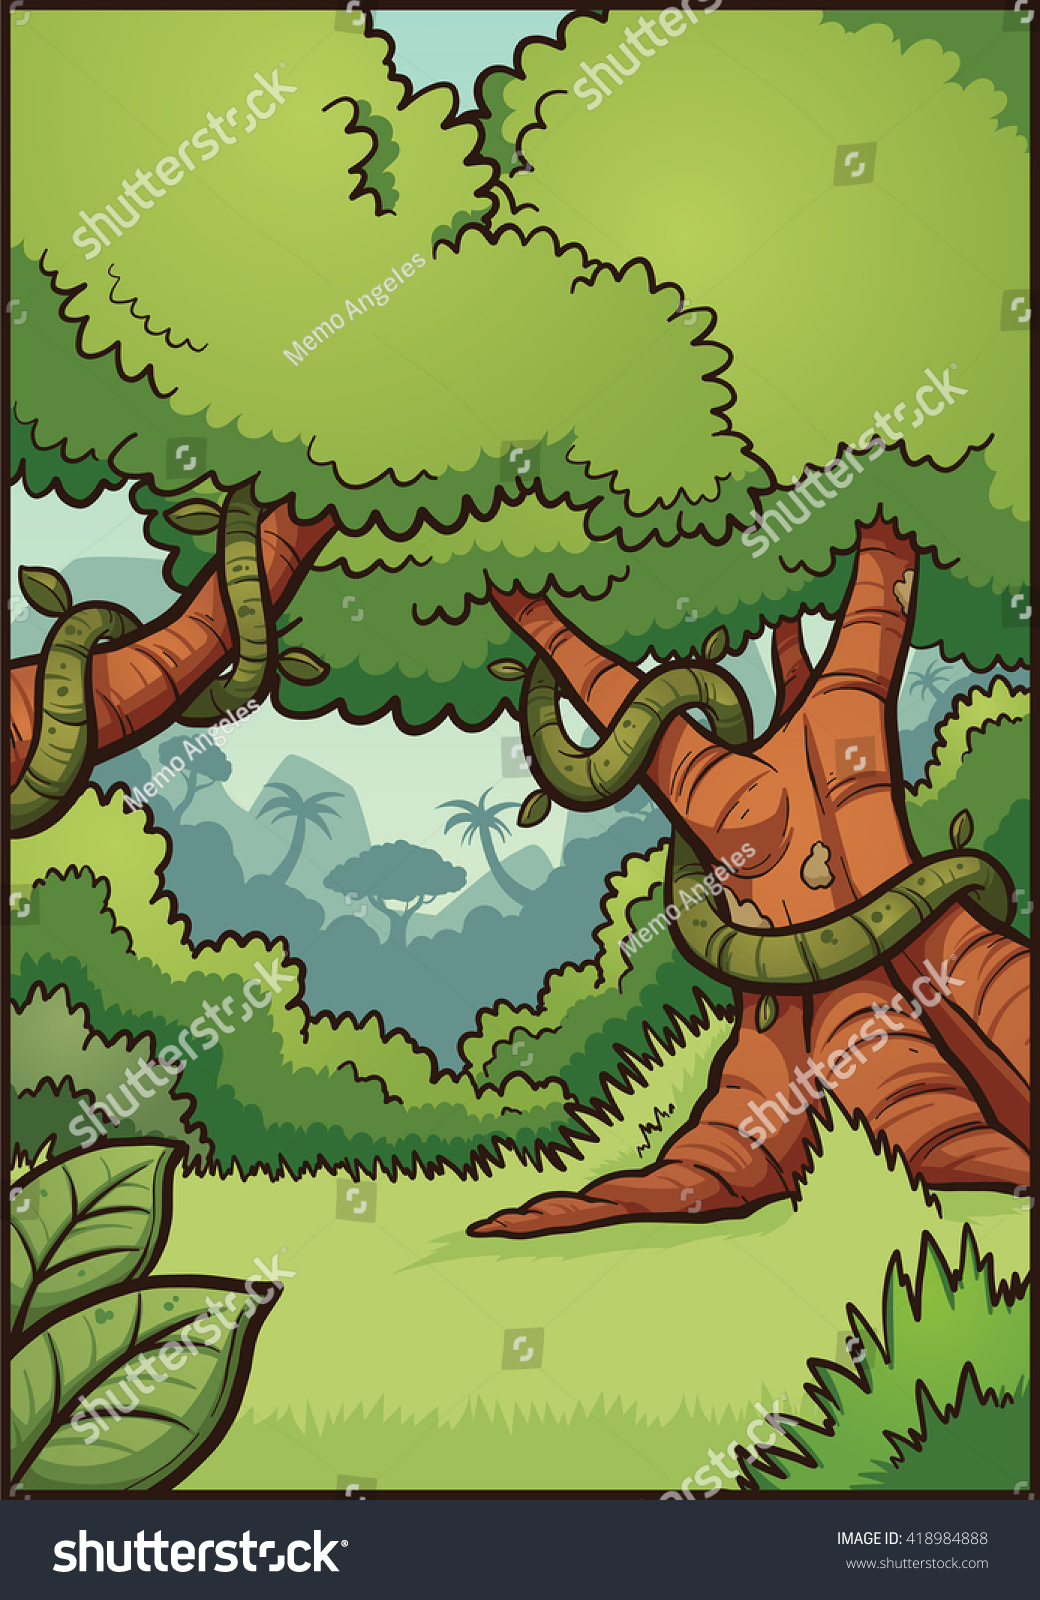 Animals in jungle background Royalty Free Vector Image